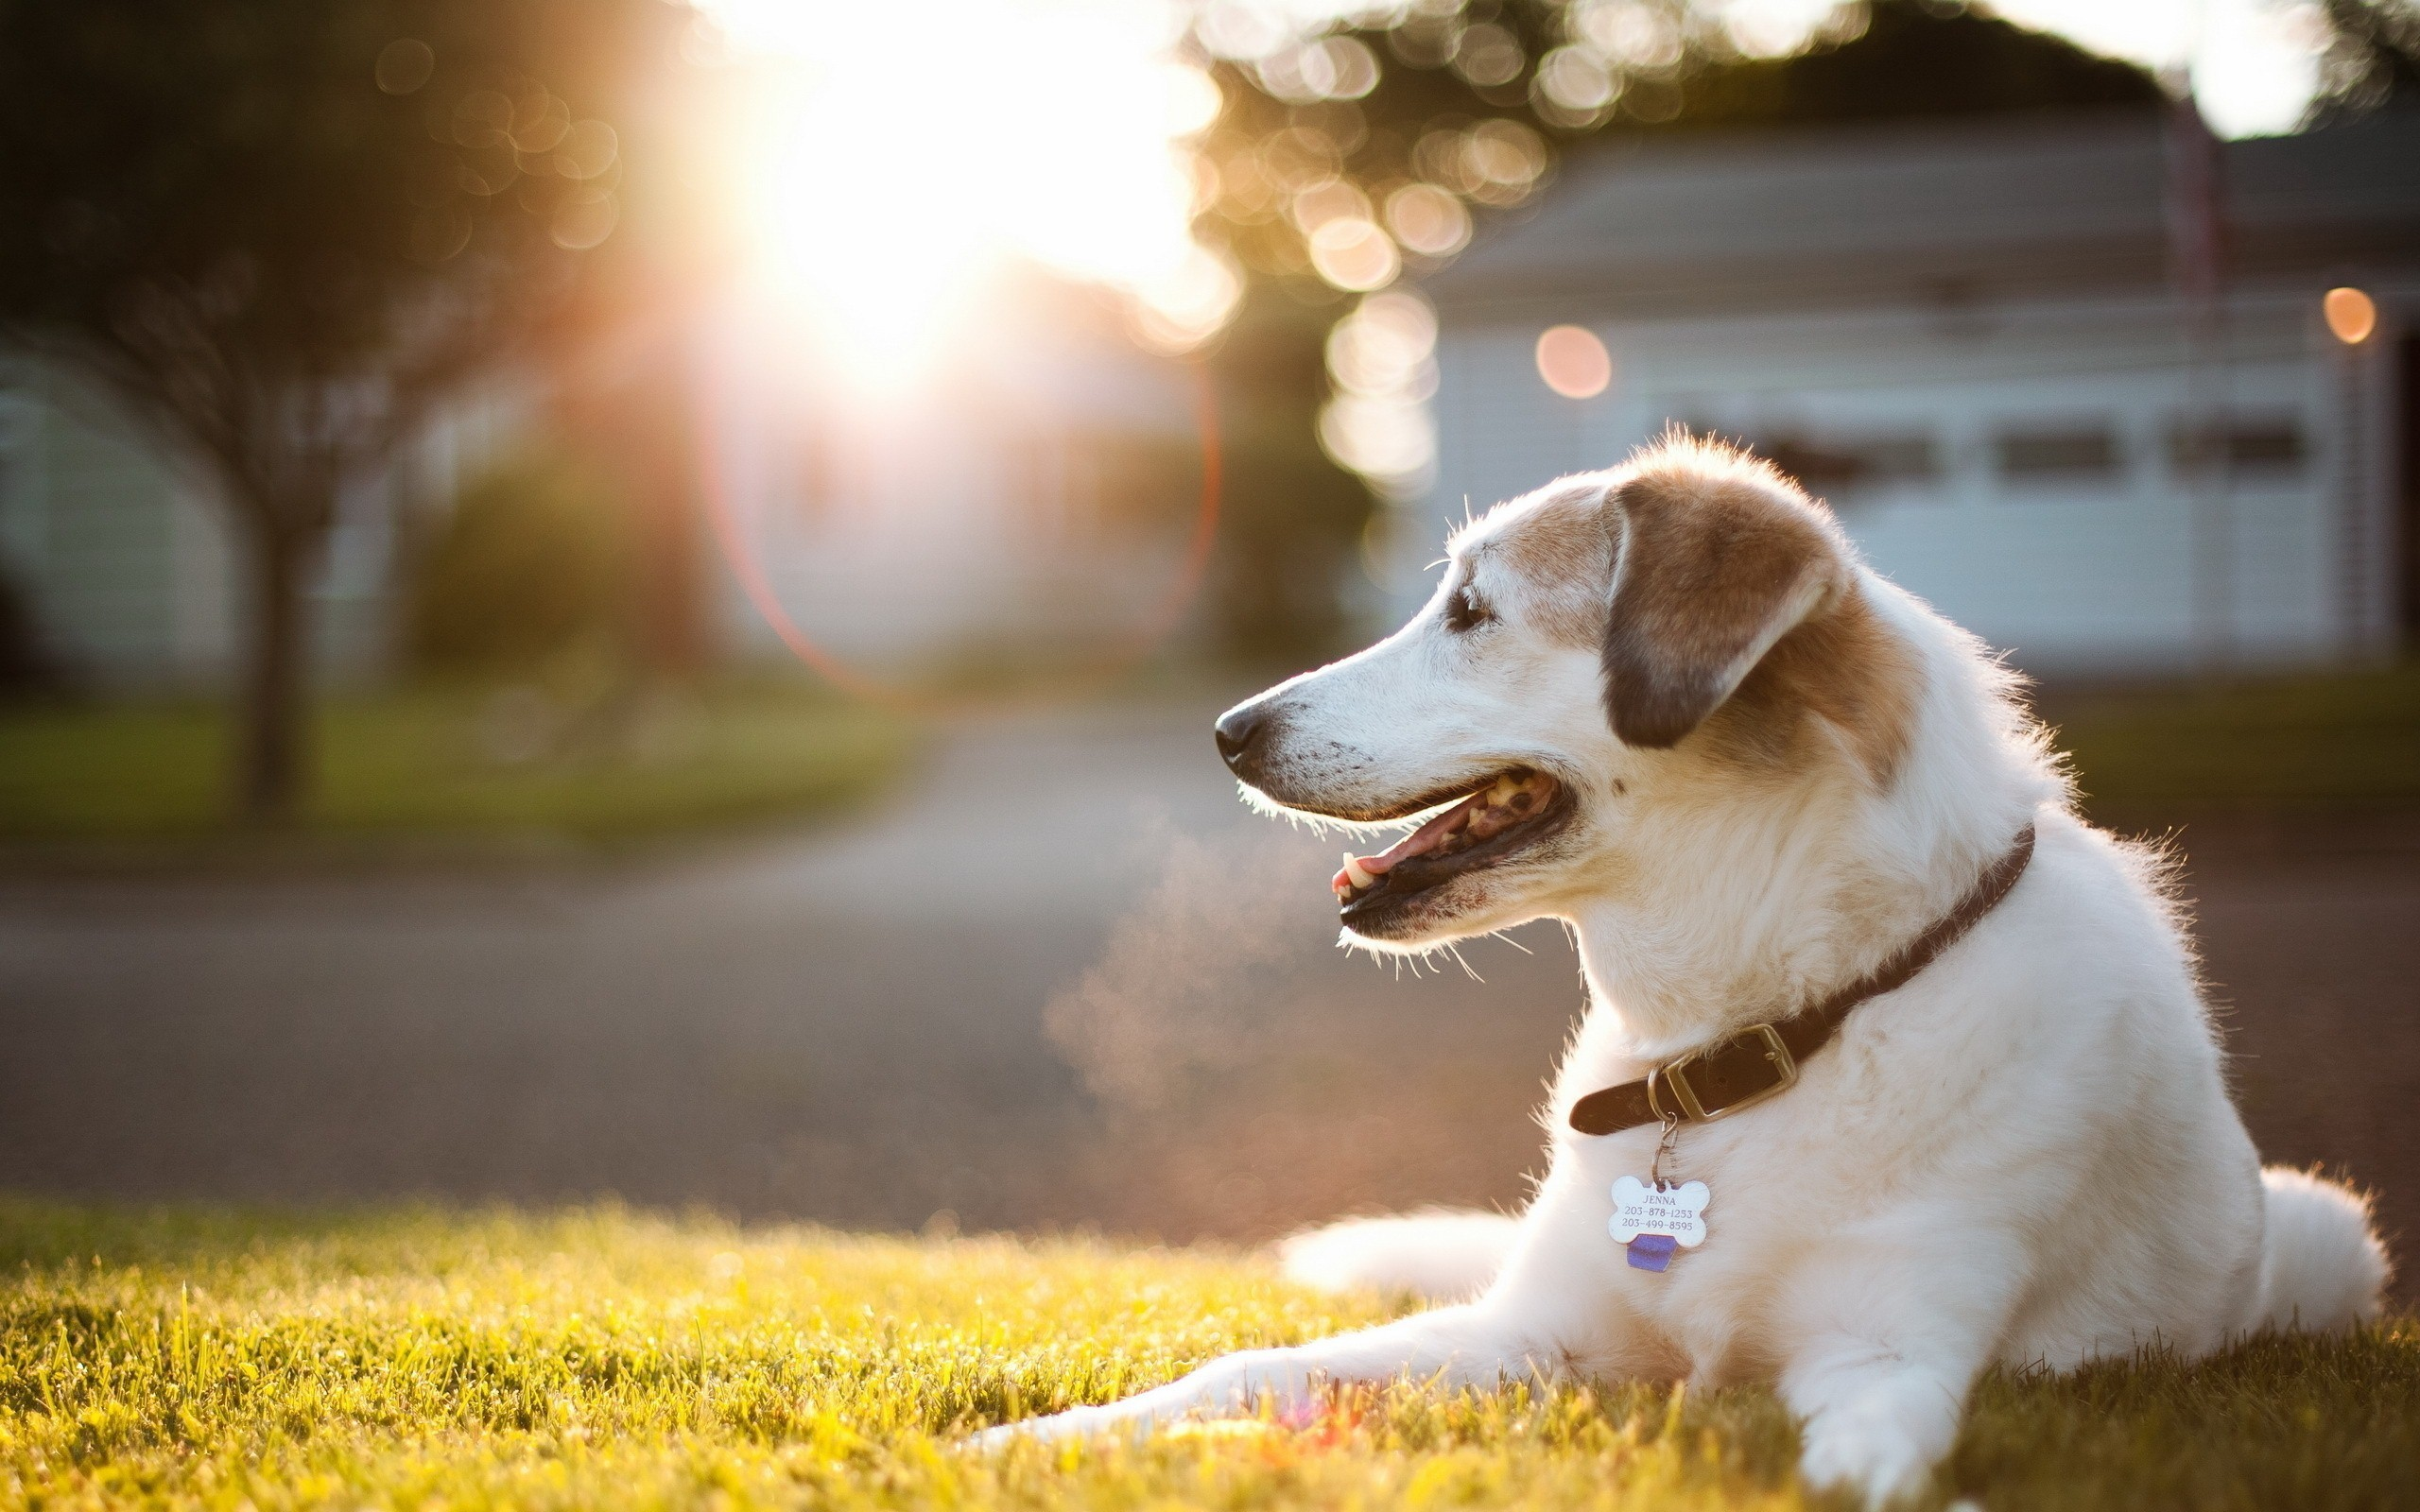 0 Dog Wallpaper HD Pretty Photos Dog Wallpapers Free Download Wide Pets  Animals HD Desktop Images